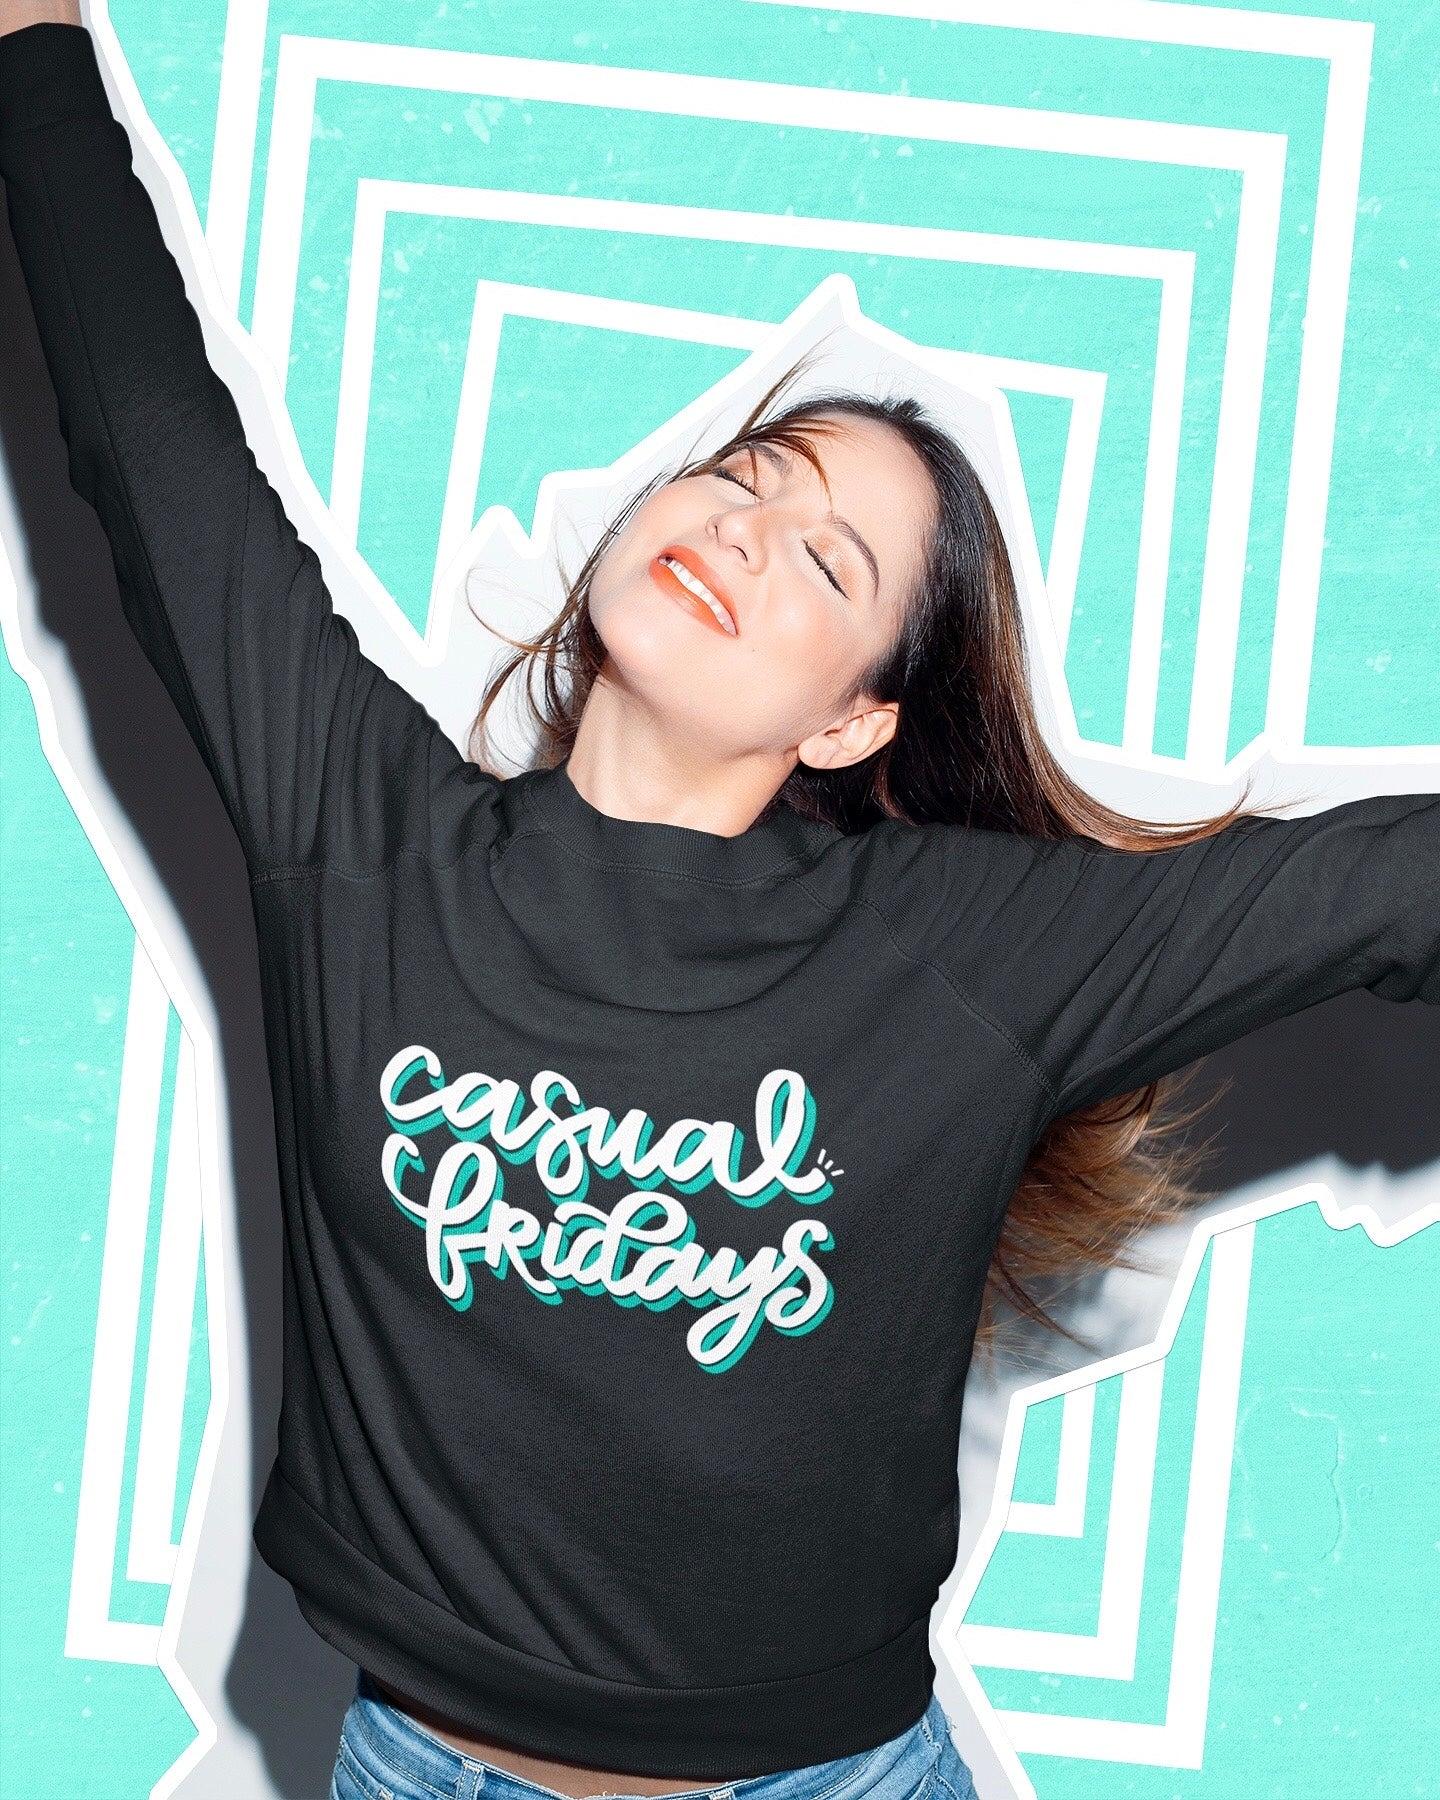 Happy girl wearing a black Casual Fridays sweatshirt on a graphic background | Kerra Sun Creative